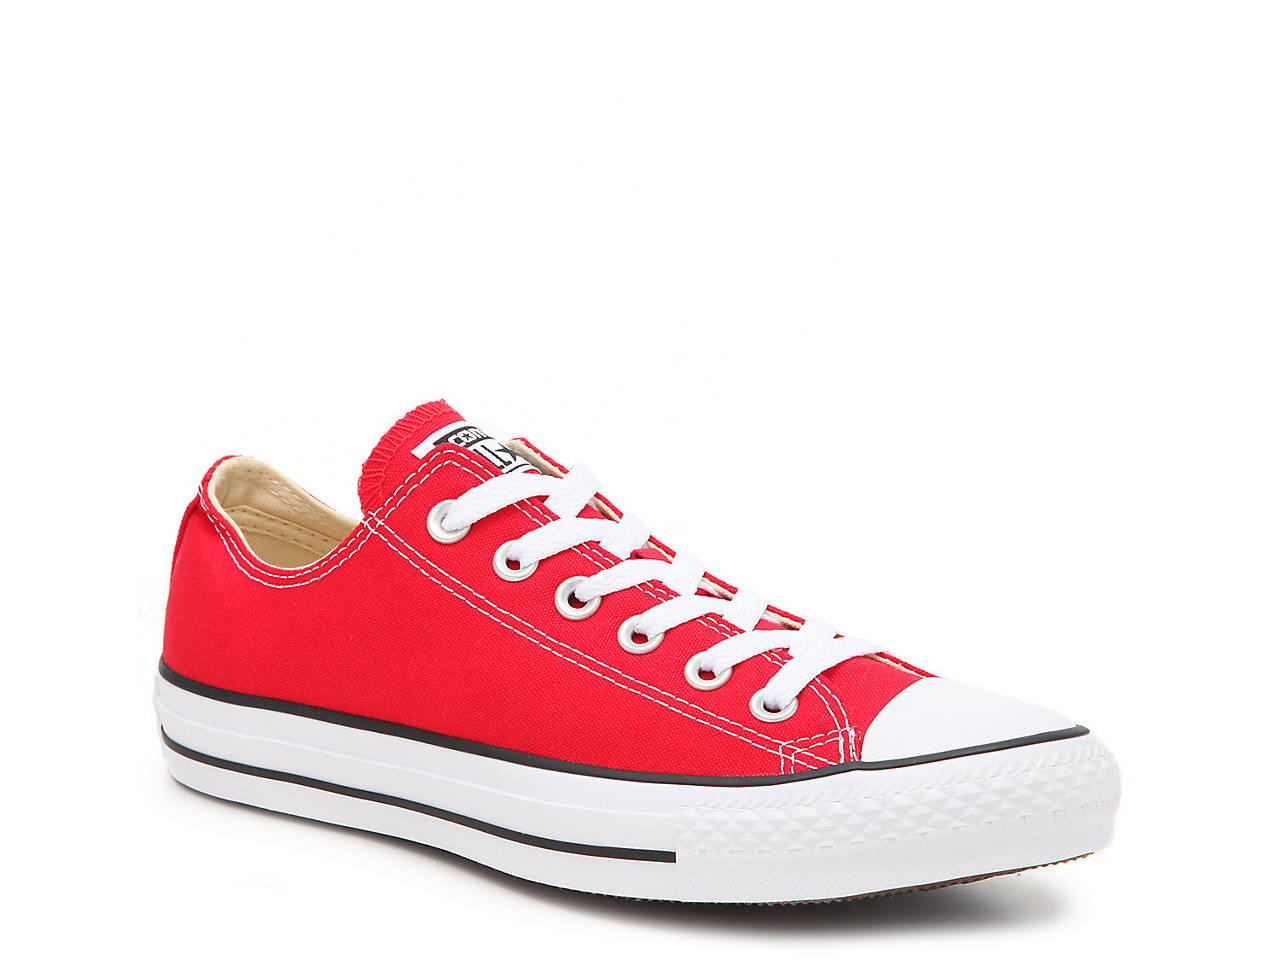 Converse Chuck Taylor All Star Sneaker - Women s Women s Shoes  c47cd589c